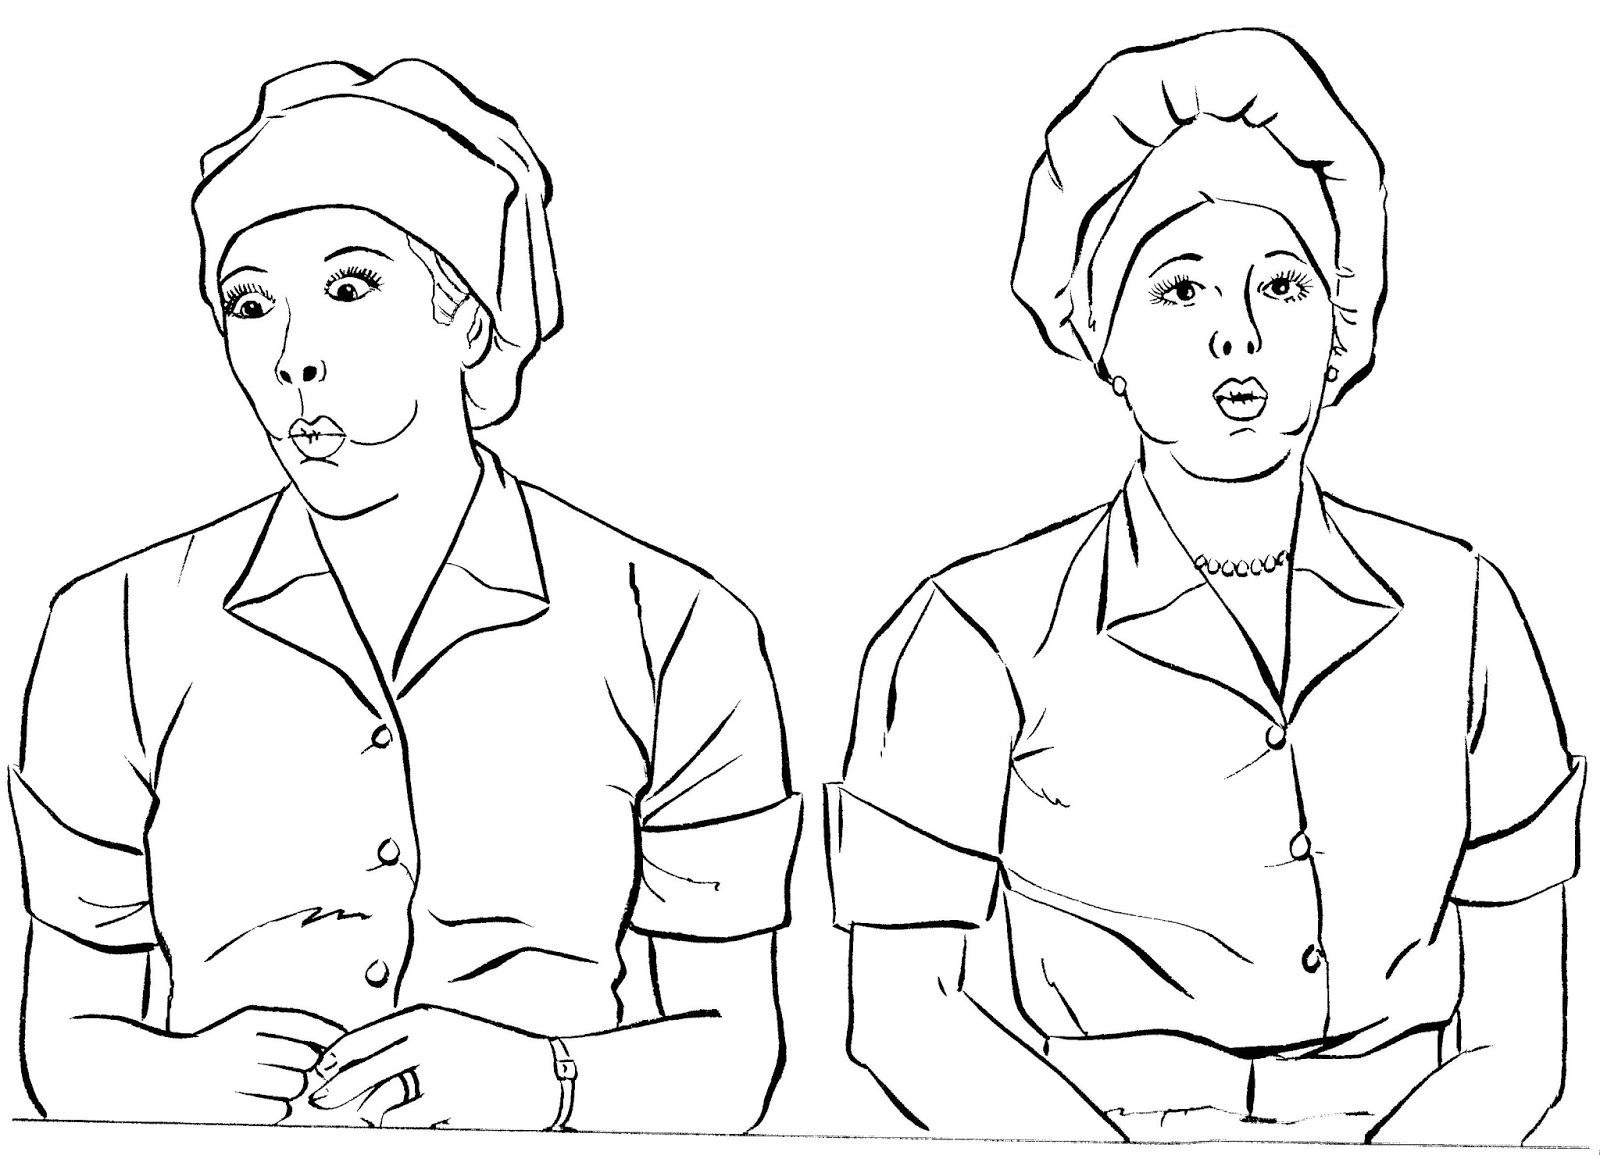 lucille ball coloring pages | Mostly Paper Dolls Too!: Color Me LUCY - Celebrating 50 ...